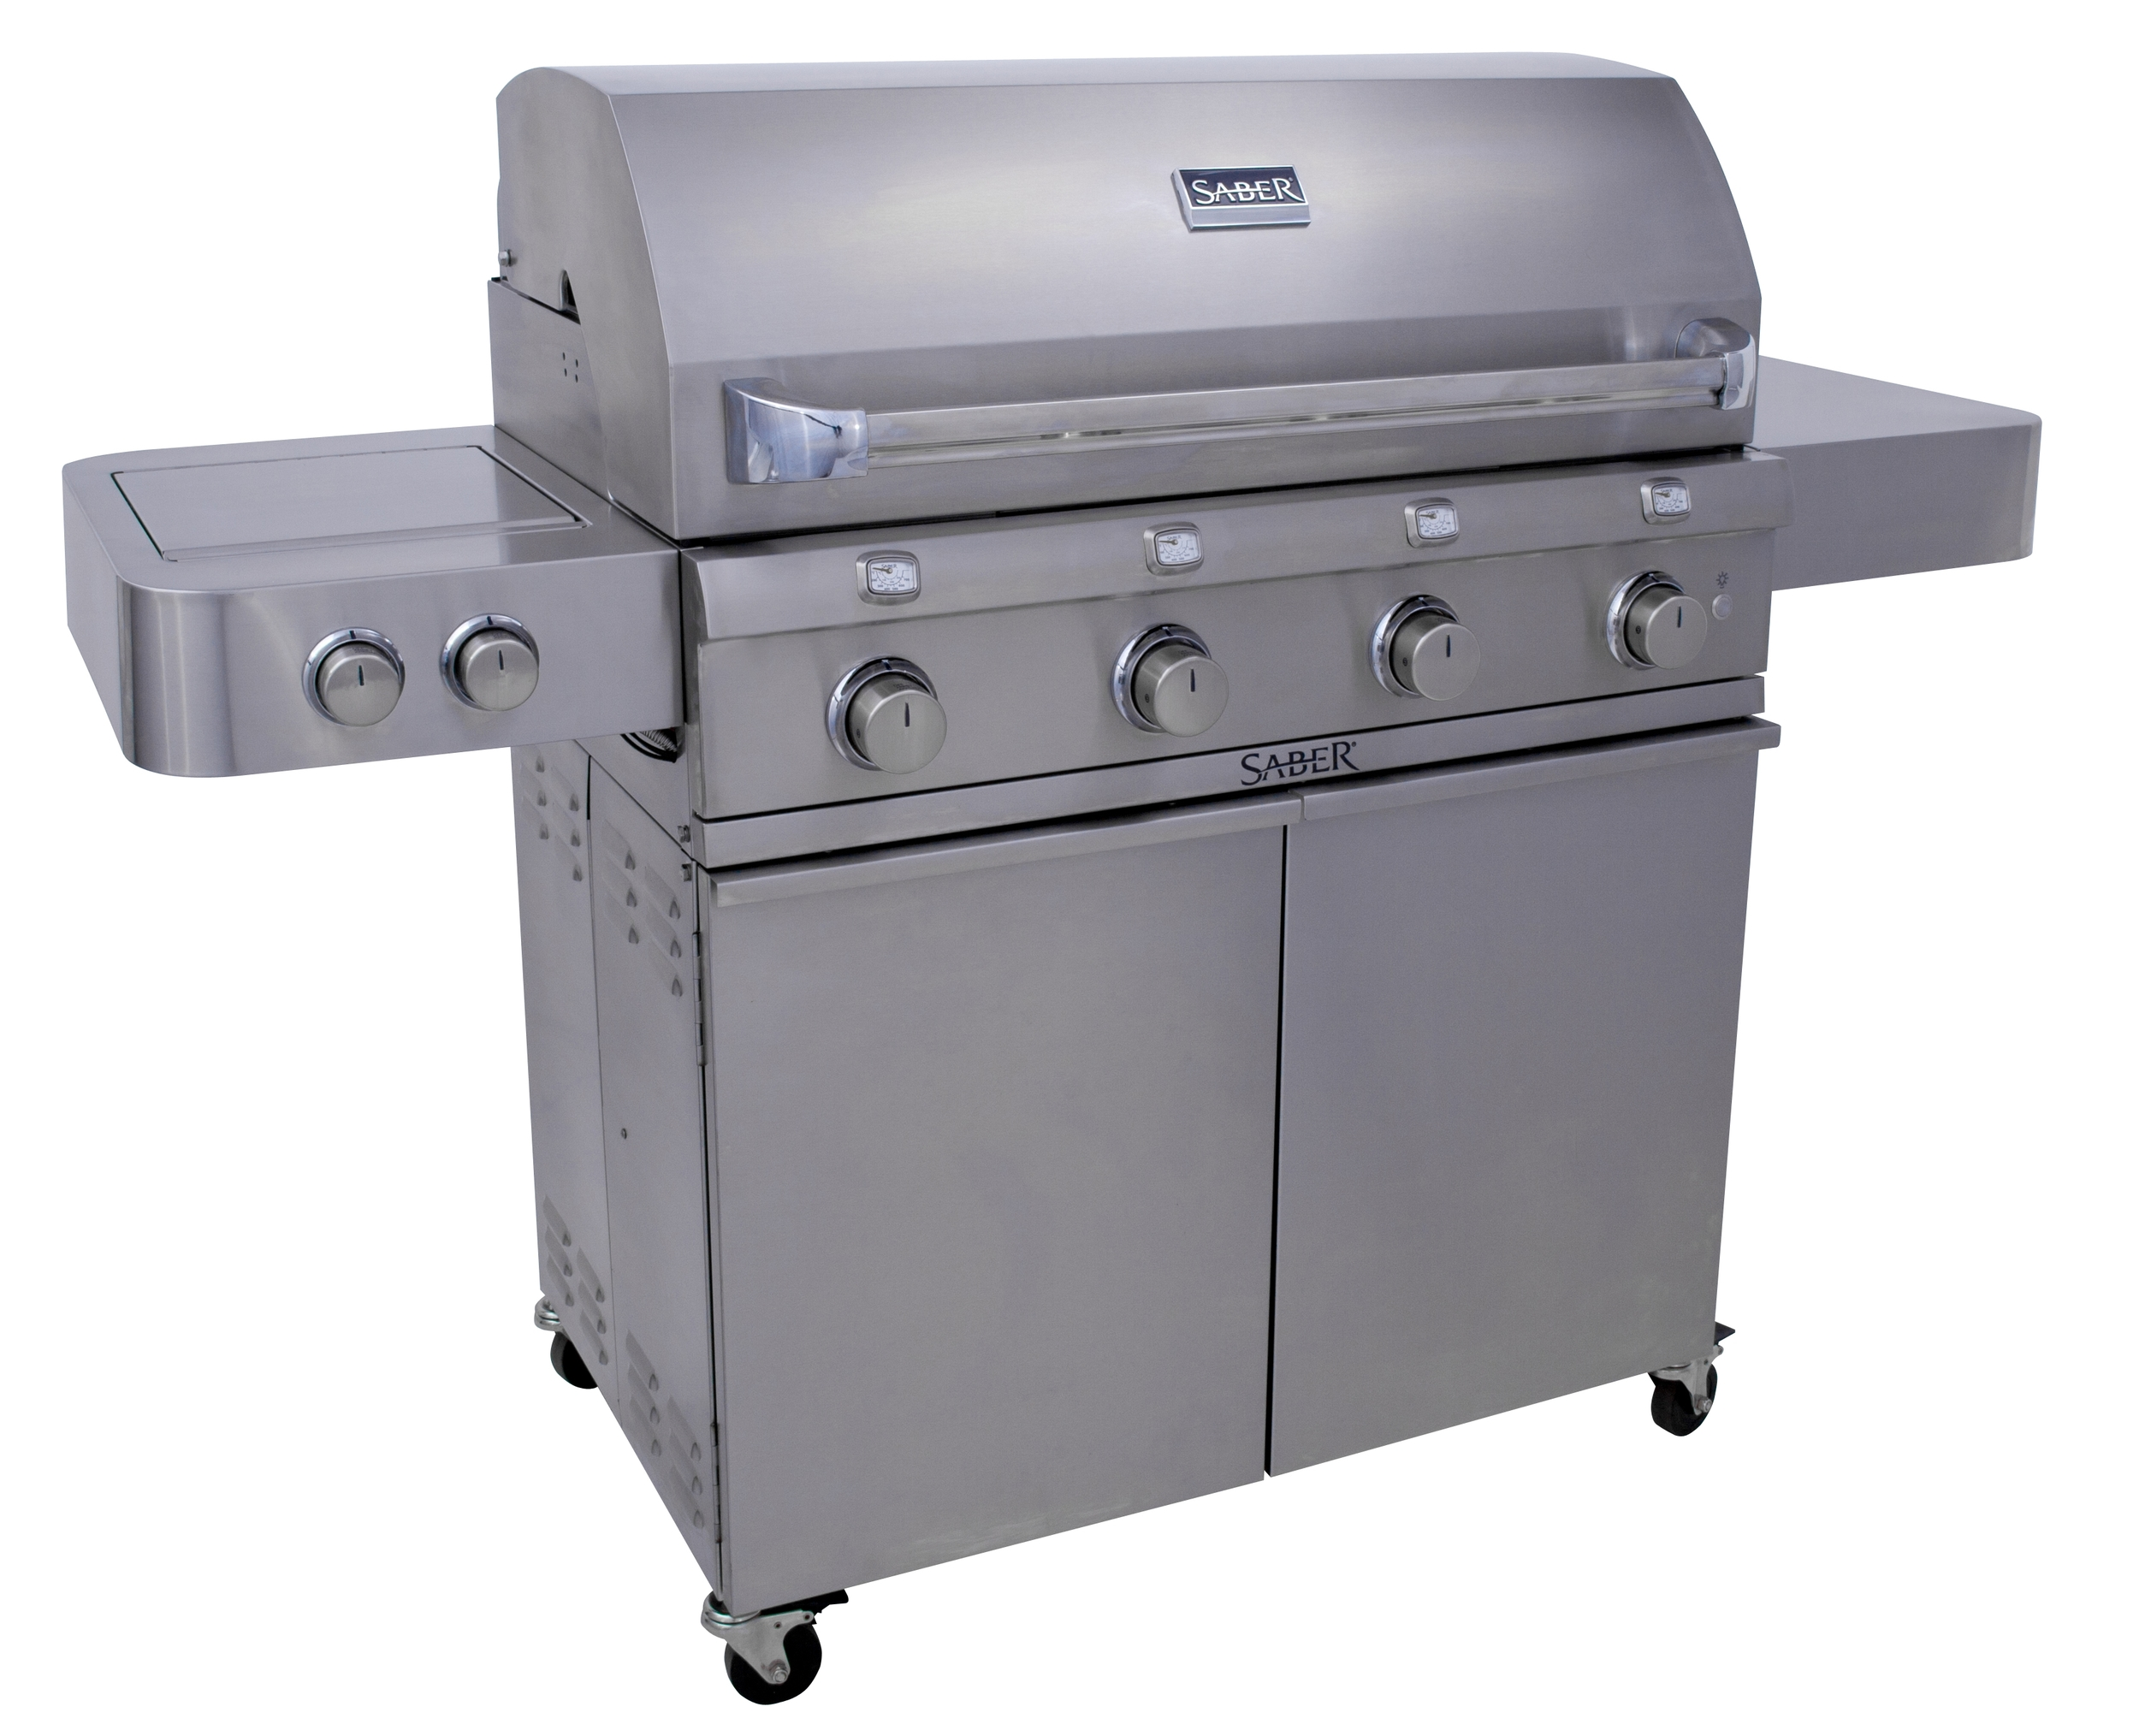 Saber R67SC0012   If you love to cook for a crowd, our largest SABER freestanding grill  has the capacity and extra features to make entertaining a breeze. 4  cooking zones allow you to adjust the cooking surface size to match the  number of people you are cooking for. The dual tube side burner expands  your options to include frying, boiling and cooking with a wok or  skillet.      Standard Features    · The  SABER patented infrared cooking system for superior grilling  performance: IR across entire cooking surface, even temperatures, no  flare-ups, 30% less propane consumption.  learn more   · All 304 stainless steel (commercial kitchen grade), nonmagnetic   · Strong, stable, durable construction with welded tubular cart and firebox frames   · Shelves bolted to a tube frame provide solid work surfaces   · 304 stainless steel burners, grate system and emitters   · 4 cooking zones for just the right amount of cooking space. Use one, two, three or all 4 zones.      --Saves gas by only heating the space you need for the meal you're cooking. · Front access grease tray for easy cleaning  · Simple cleanup: just burn off and brush away food debris  · Safe, easy natural gas conversion with SABER's exclusive EZNG technology  · Fast assembly with 26 common fasteners  · SABER grate cleaning tool included   Special Features   · 895 total square inches of cooking area (670 primary, 225 secondary)  · Enclosed 304 stainless steel cart and heavy duty side shelves  · 304 stainless steel firebox exterior with seamless welded lid  · Grate-level temperature gauges for greater accuracy  · Four 304 stainless steel tube burners (32,000 total BTUs, including 18,000 for side burner)  · Dual tube side burner for greater versatility (perfect for boiling, frying, woks, skillets)  · Push and turn integrated electronic ignition at each burner for reliable start-up every time  · Adjustable 304 stainless steel warming rack with storage and roasting positions  · Interior halogen lights for nightti